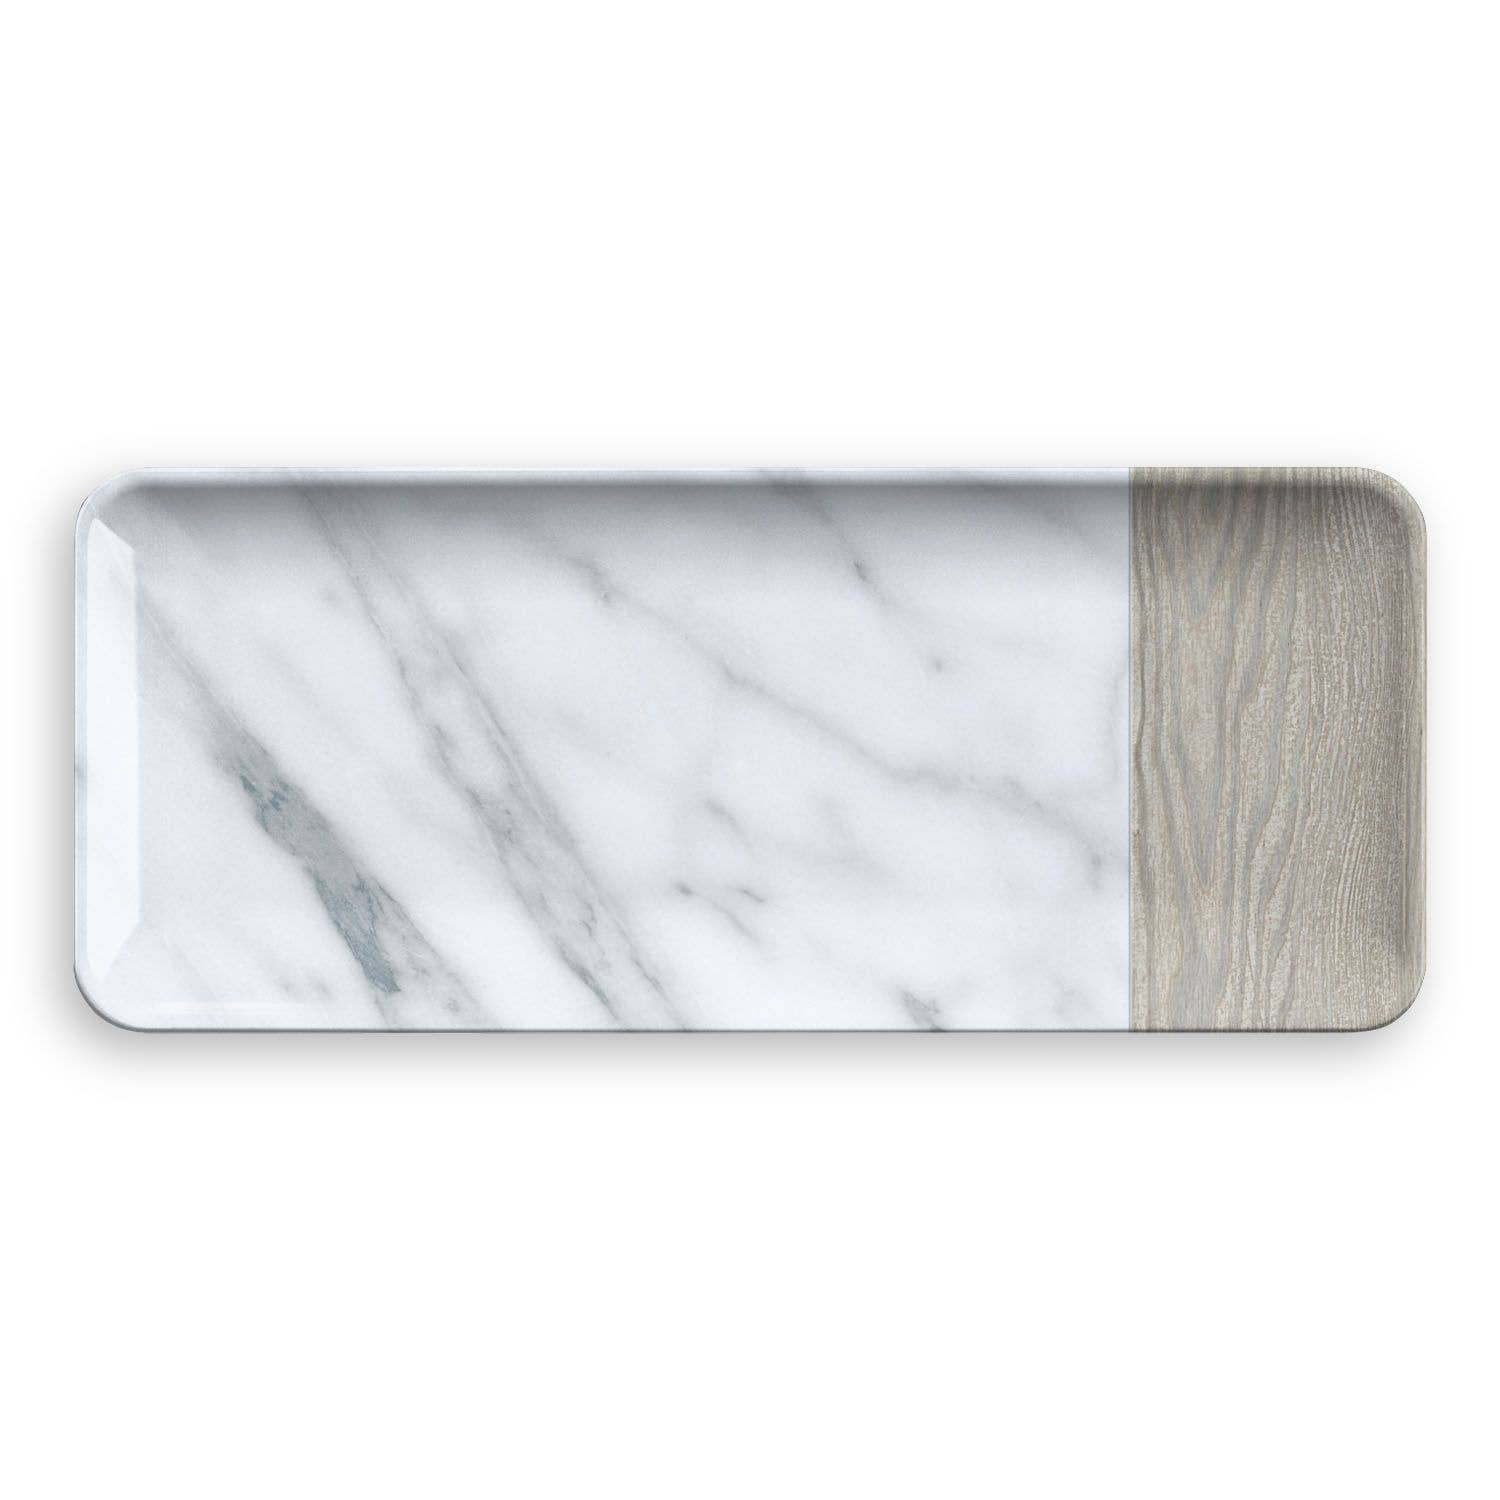 Carrara & French Oak Platter, Melamine